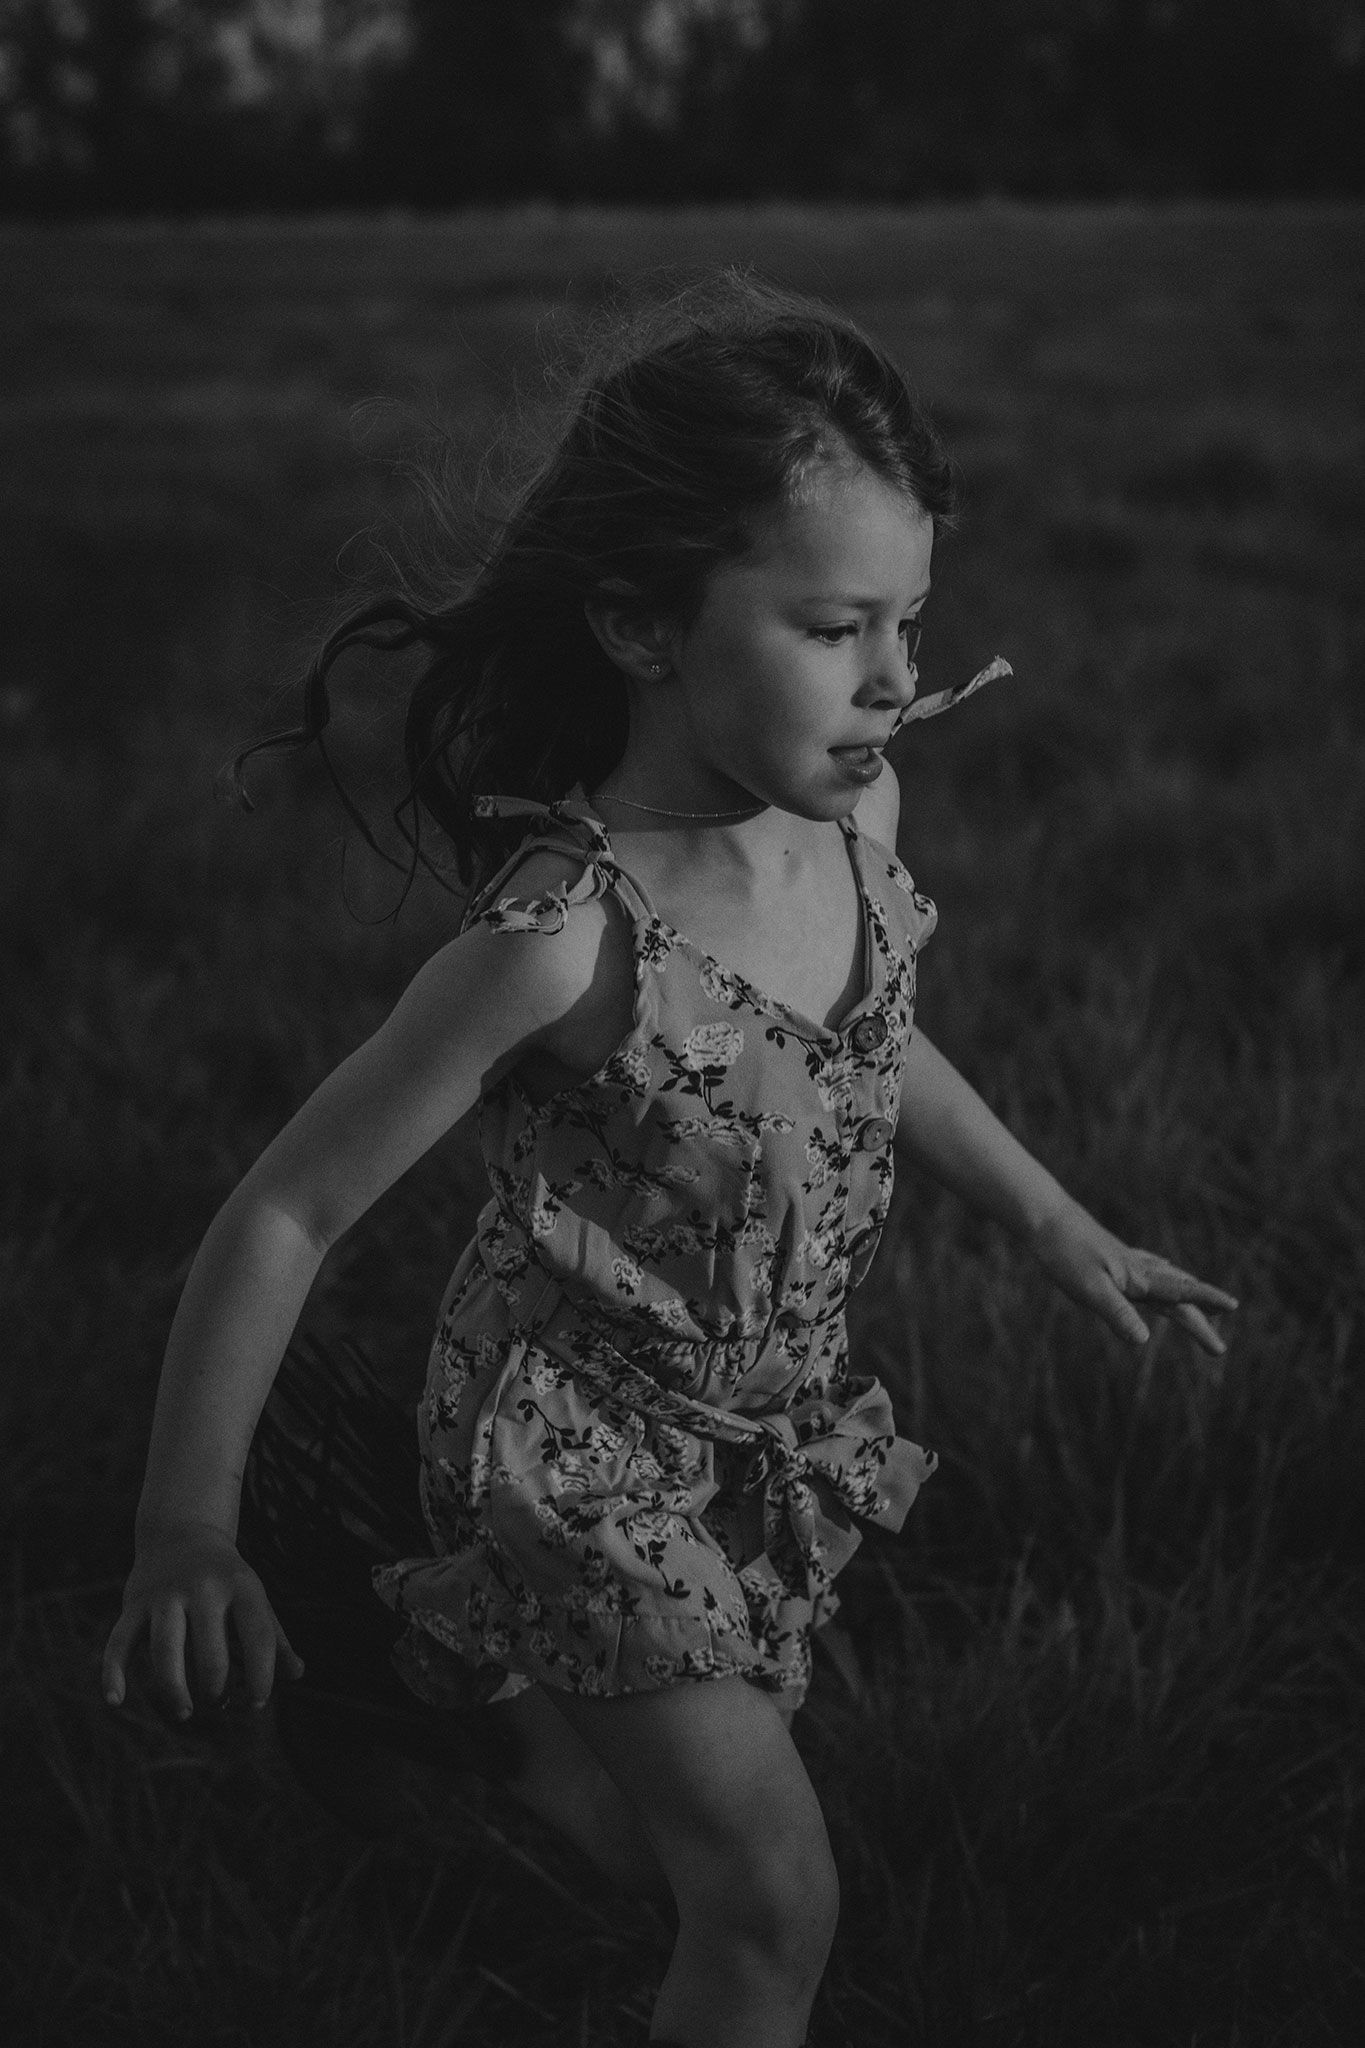 black and white image of little girl running through field at sunset